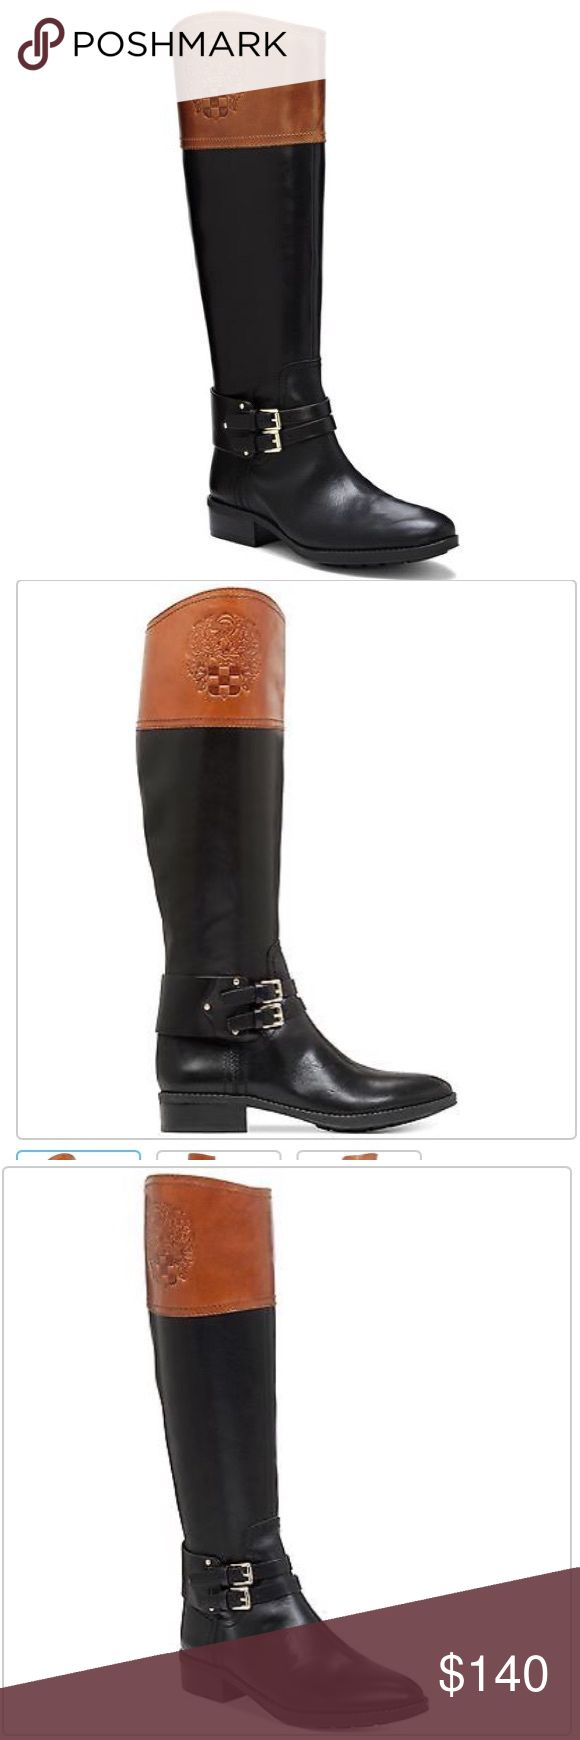 """💖FLASH SALE💖Vince Camuto Crest Embossed  Boot Ride off in style wearing this classic boot. Lapped up in two-tone leather, this classic riding boot is distinguished by an embossed crest symbol on the cuff and double-buckle ankle belt. A smart choice with the Transitional Quilted Jacket. 1.5"""" heel """" shaft height; """" calf circumference Leather upper, man-made lining and sole Side zip closure.  Brand new without box. Vince Camuto Shoes Over the Knee Boots"""